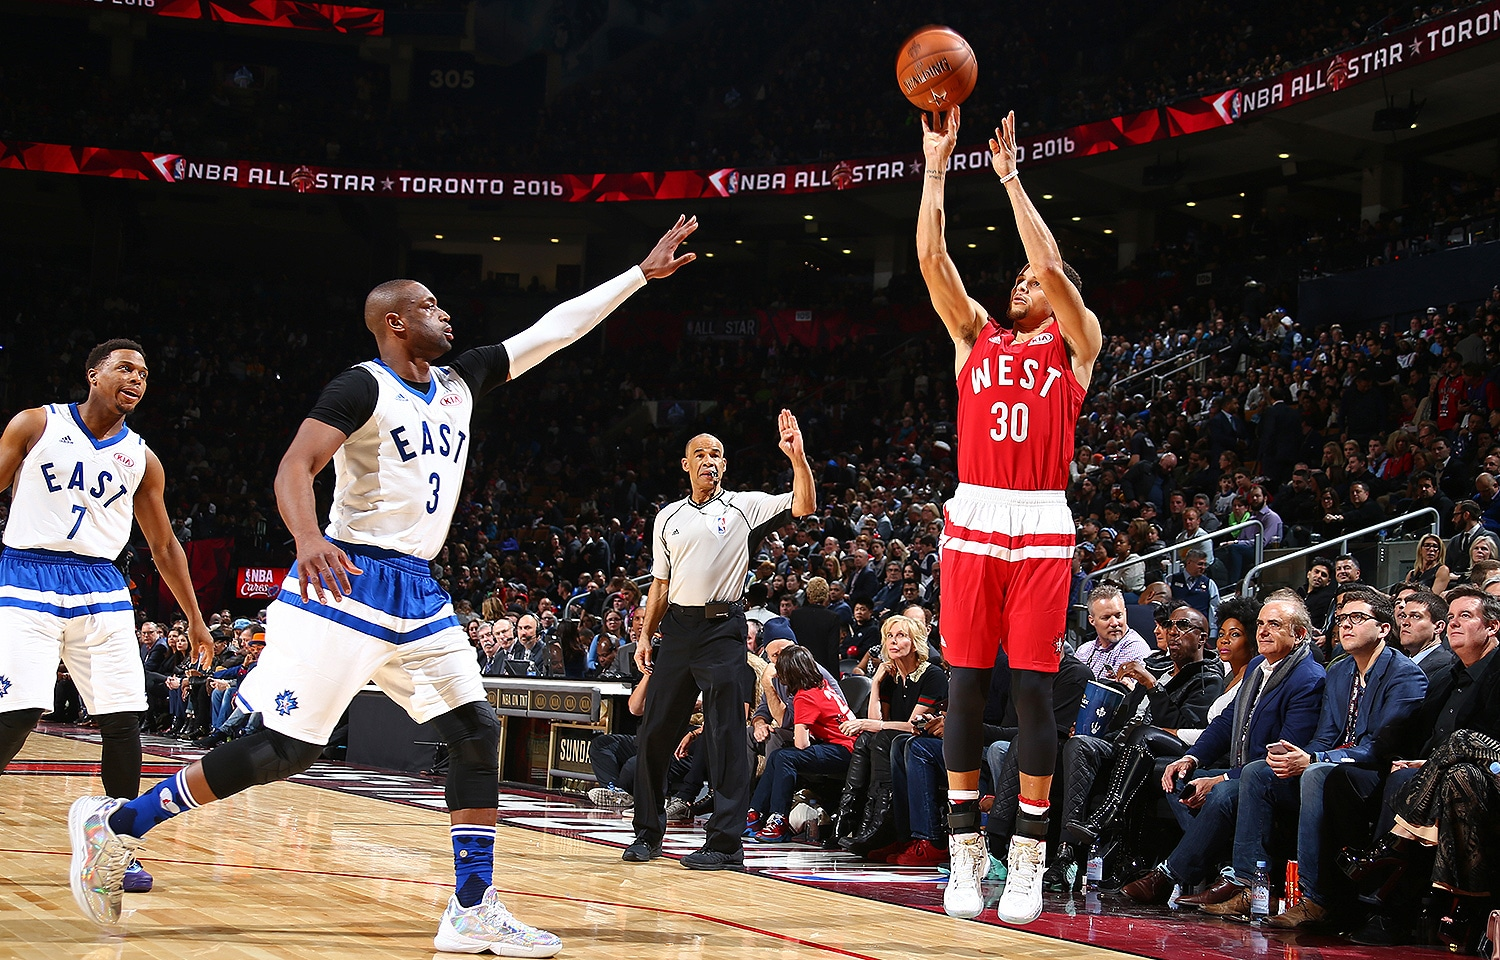 designer fashion 1aa5d aa7f7 Curry Splashes and Smashes as West Win All-Star Game ...